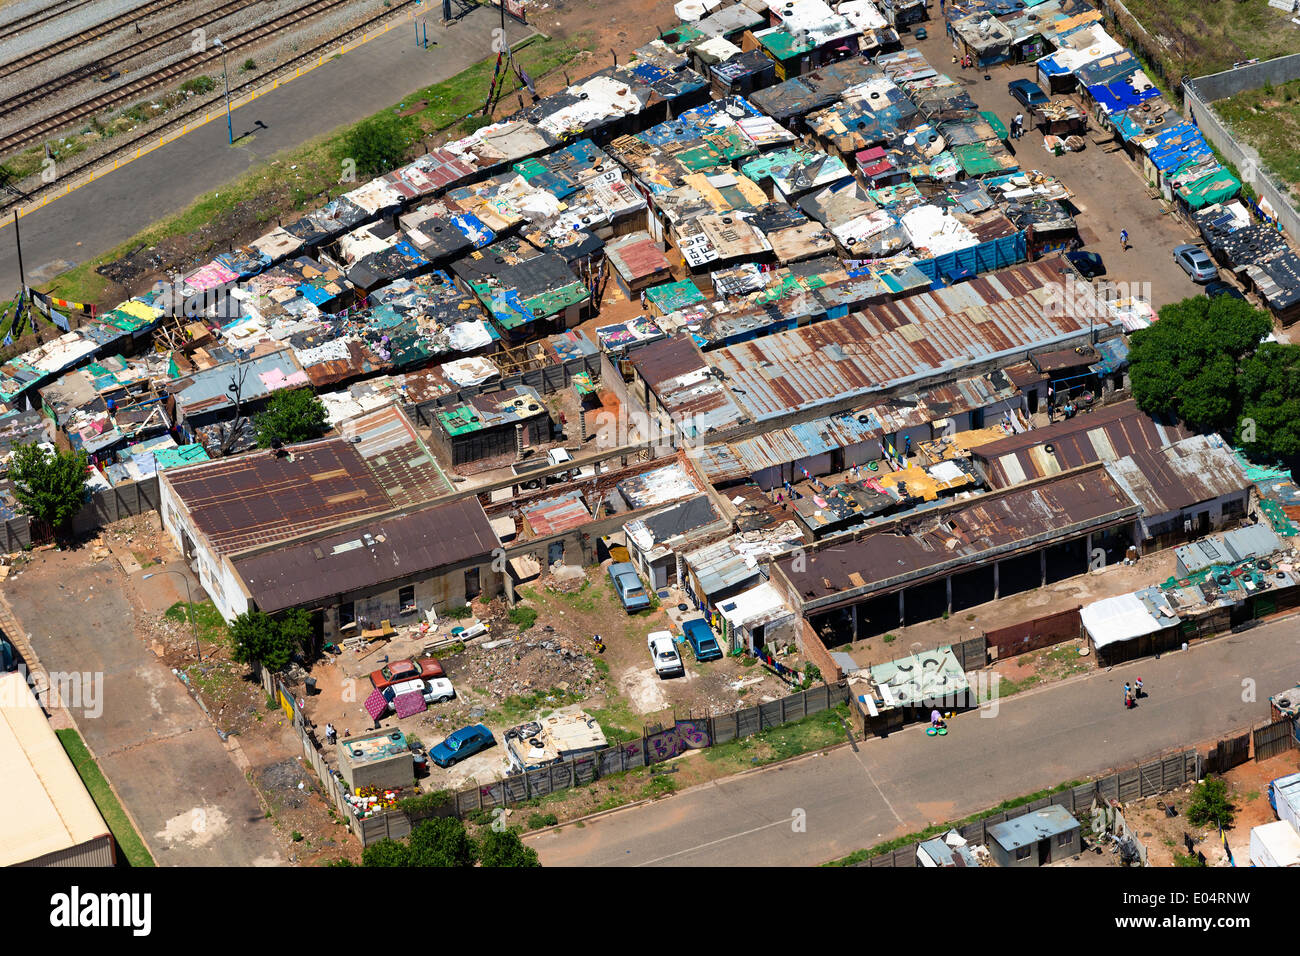 Aerial view of an informal settlement in central Johannesburg.South Africa - Stock Image